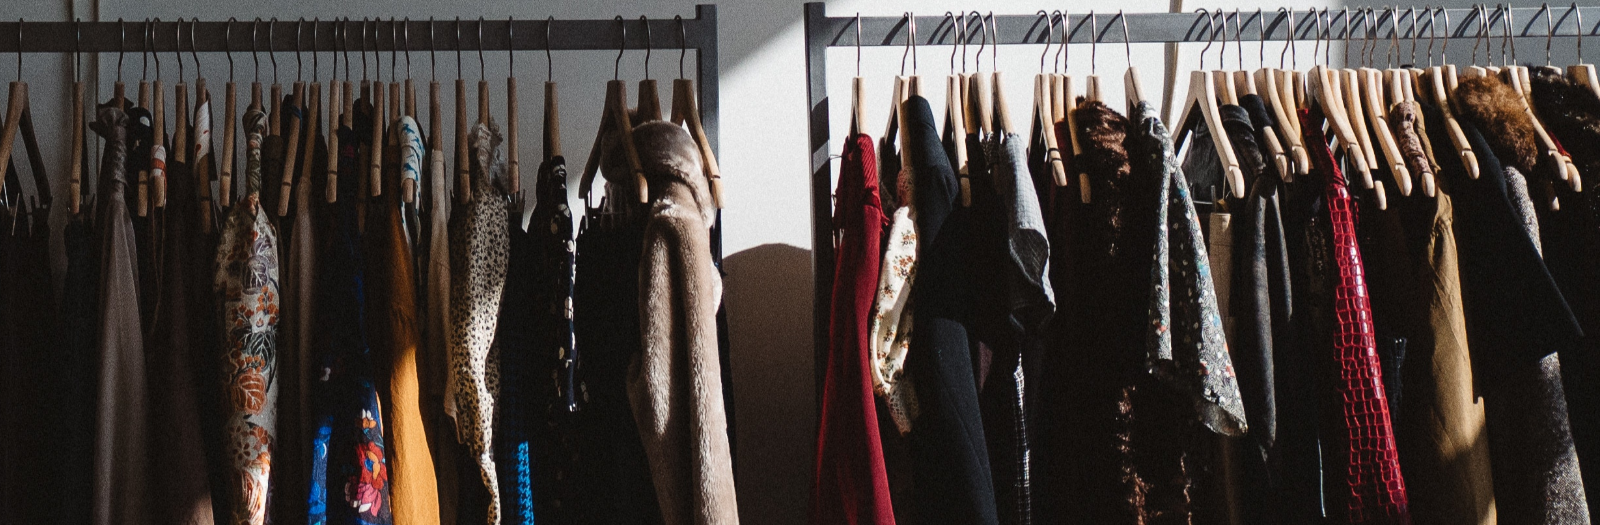 clothes on clothing rack